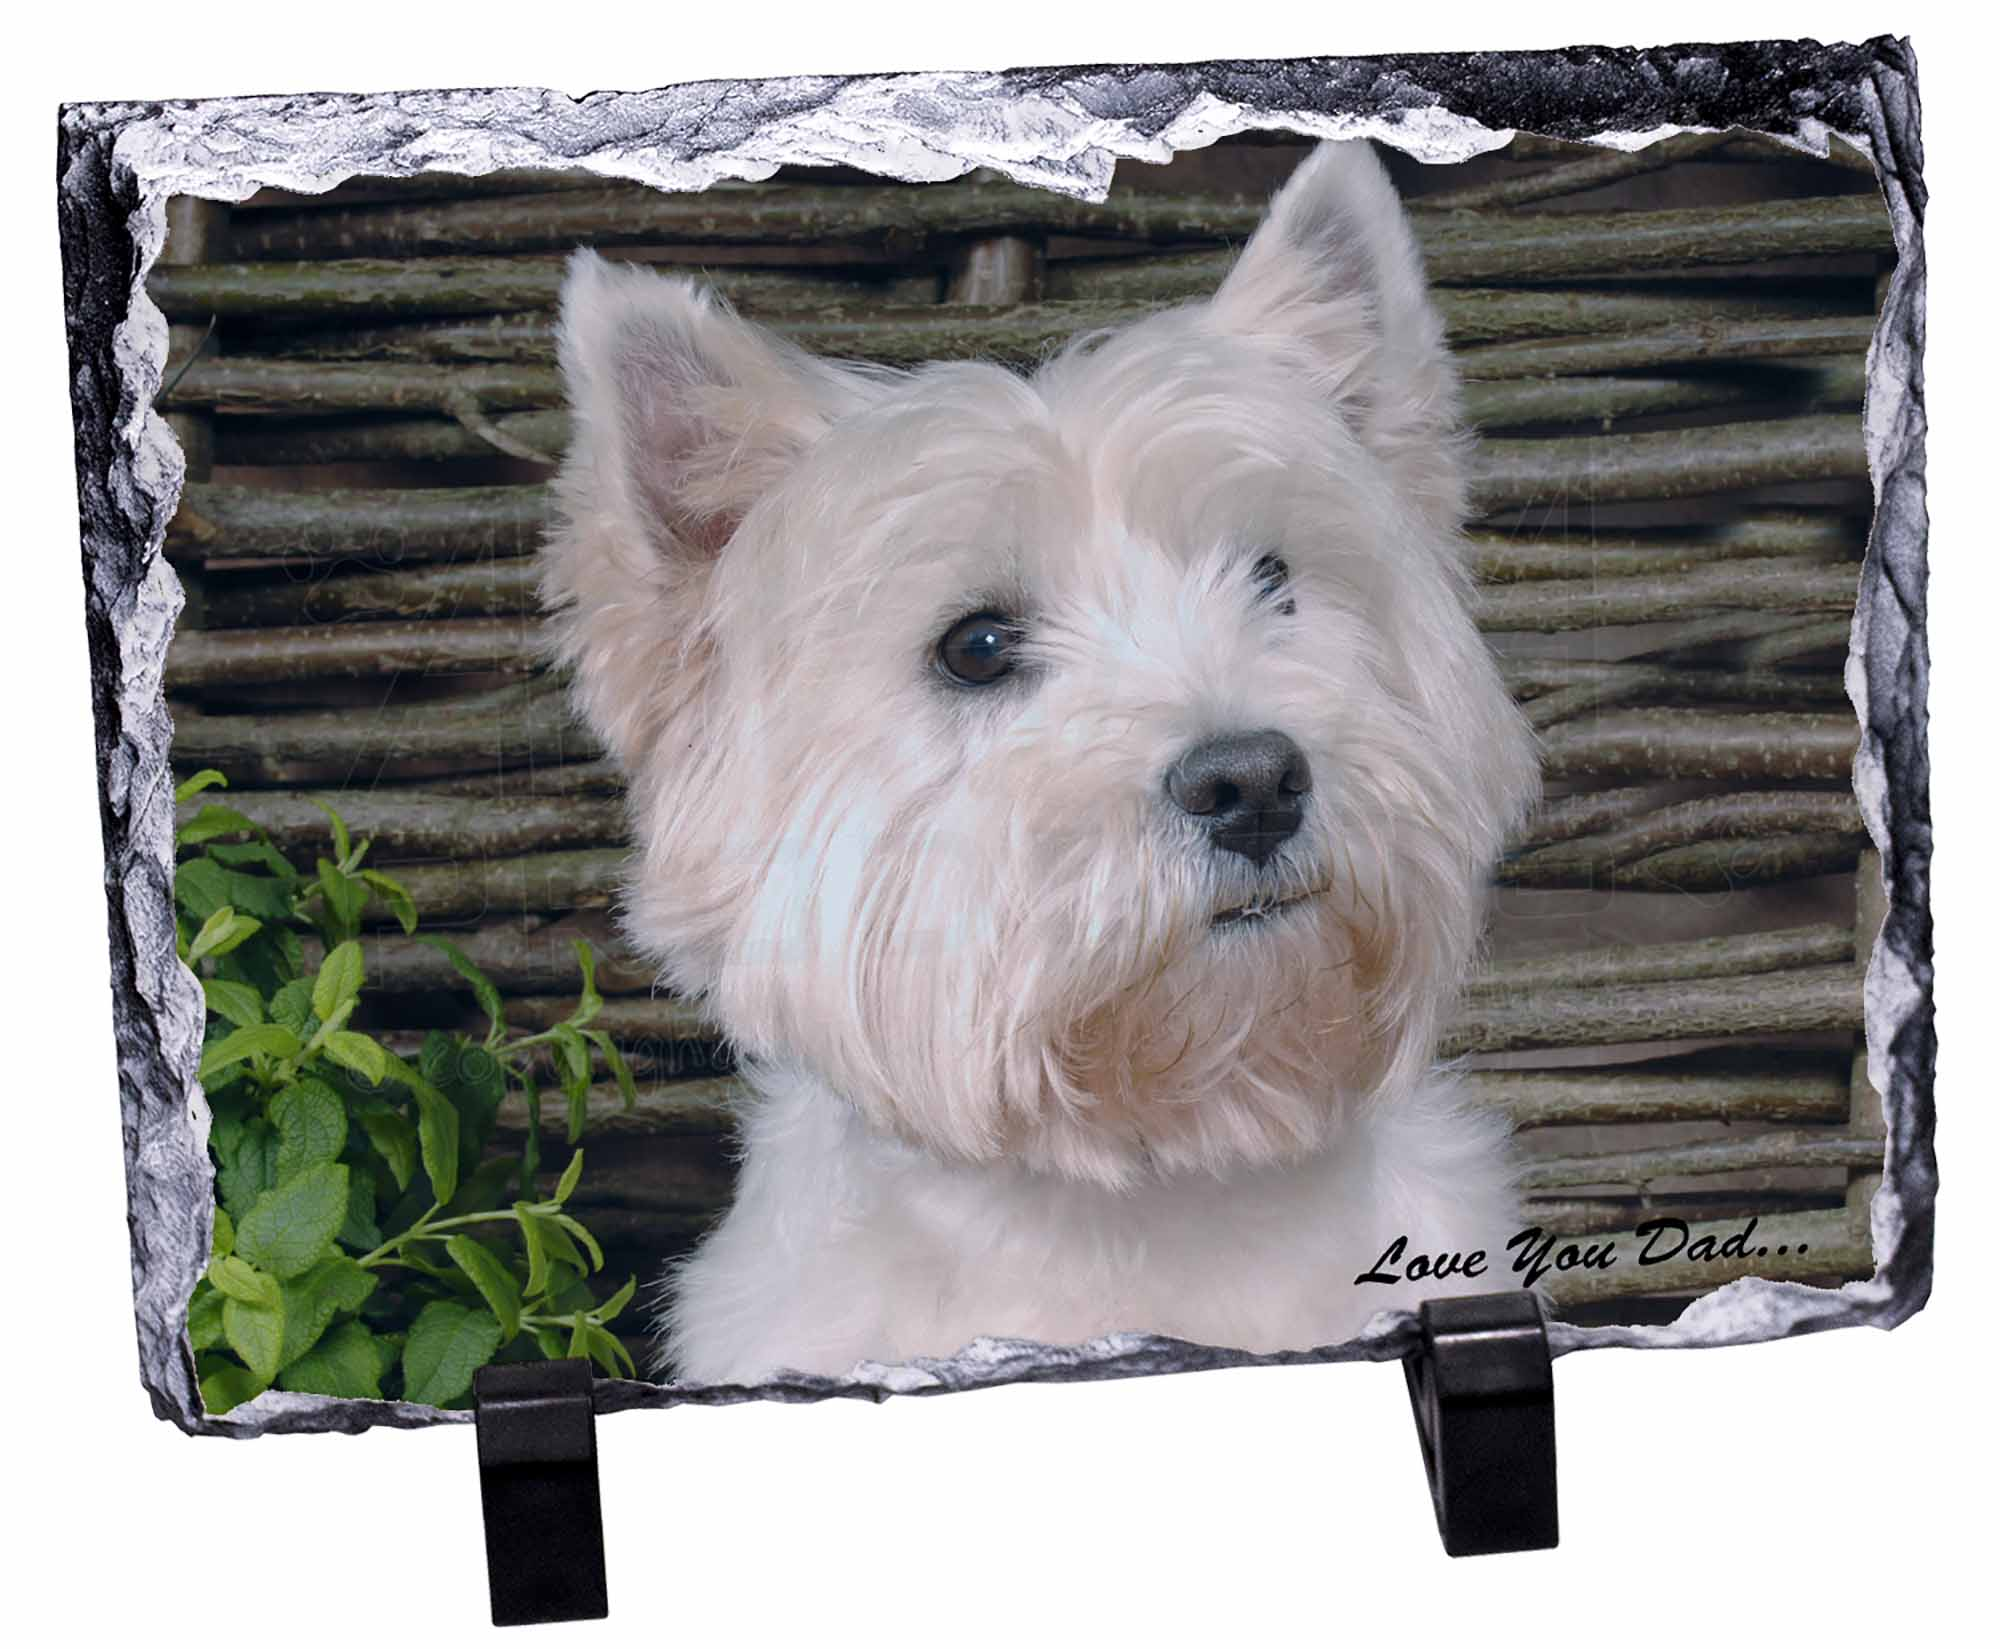 DAD-131SC Westie Dog /'Love You Dad/' Single Leather Photo Coaster Animal Breed G